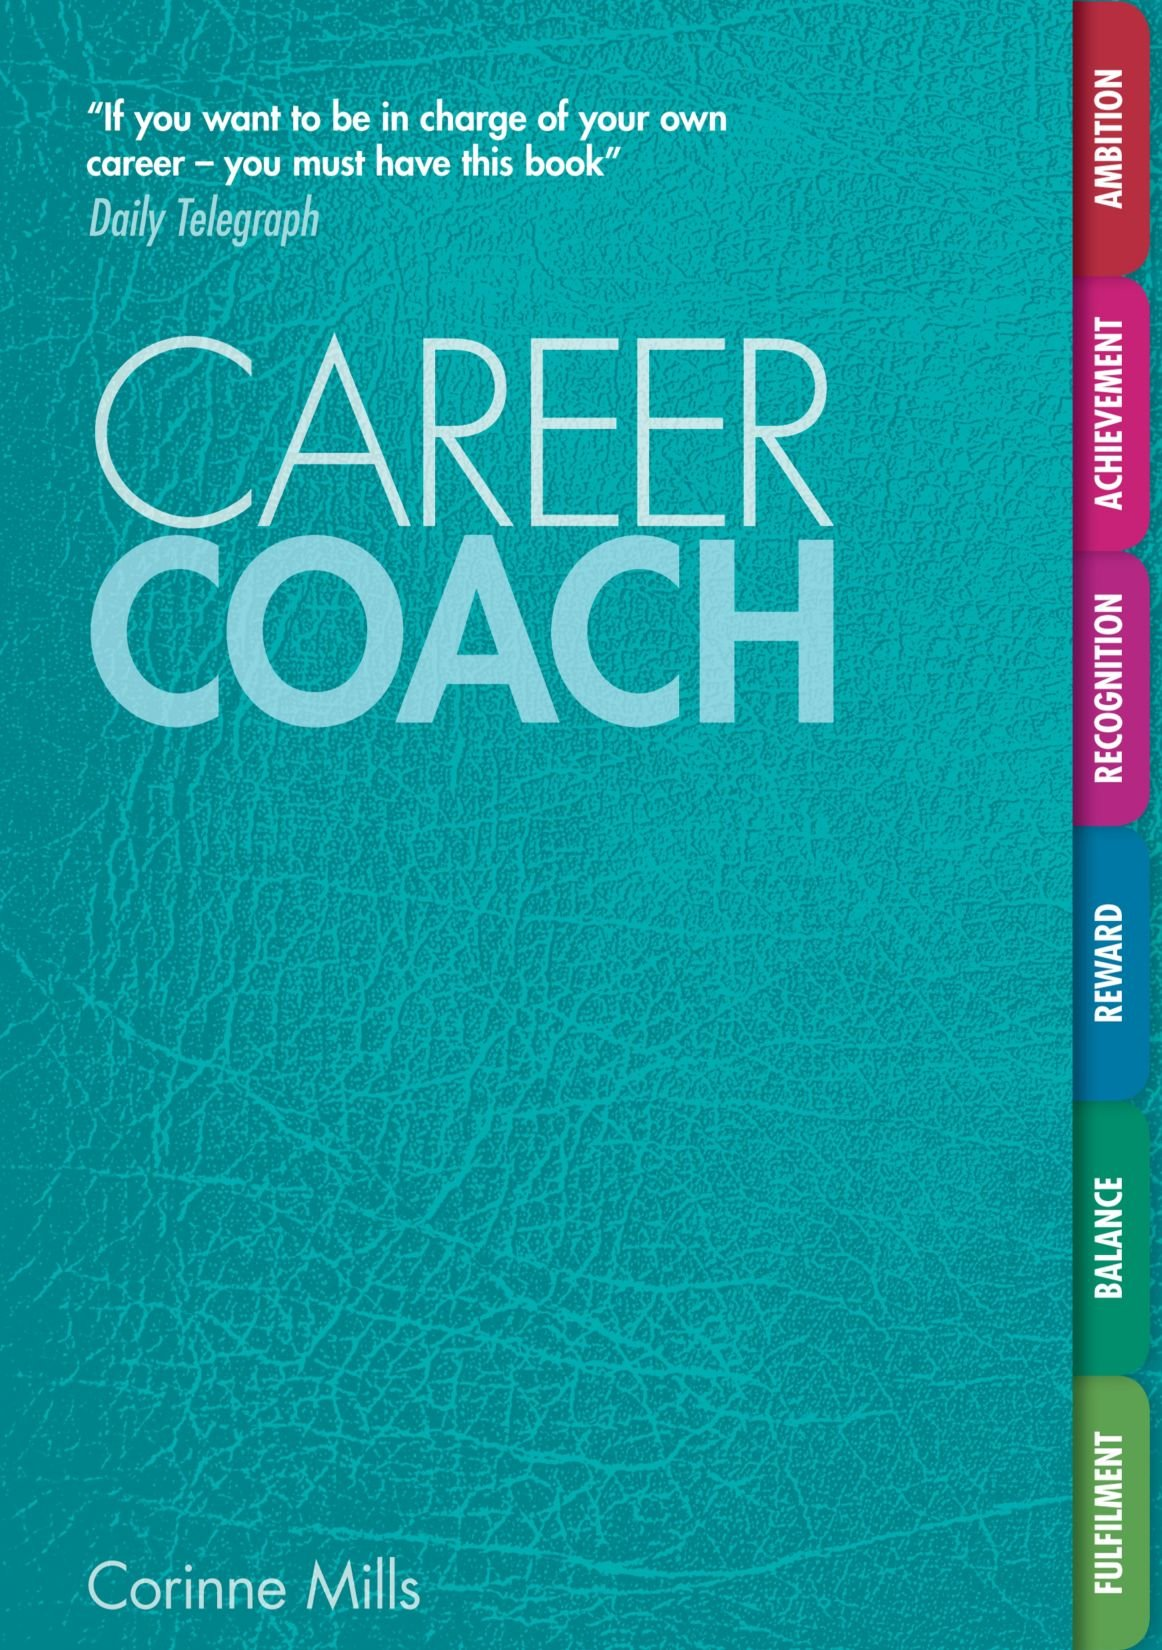 career coach your personal workbook for a better career amazon career coach your personal workbook for a better career amazon co uk corinne mills 9781844552702 books